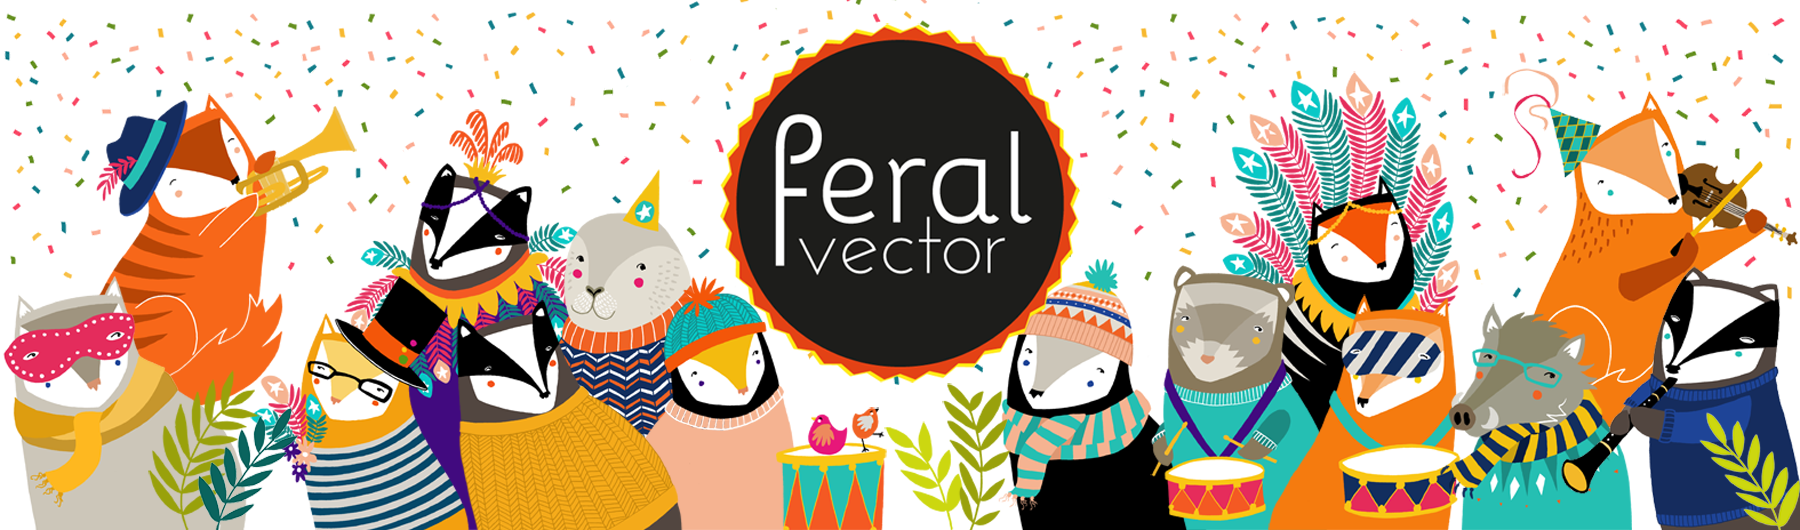 Feral Vector 2018